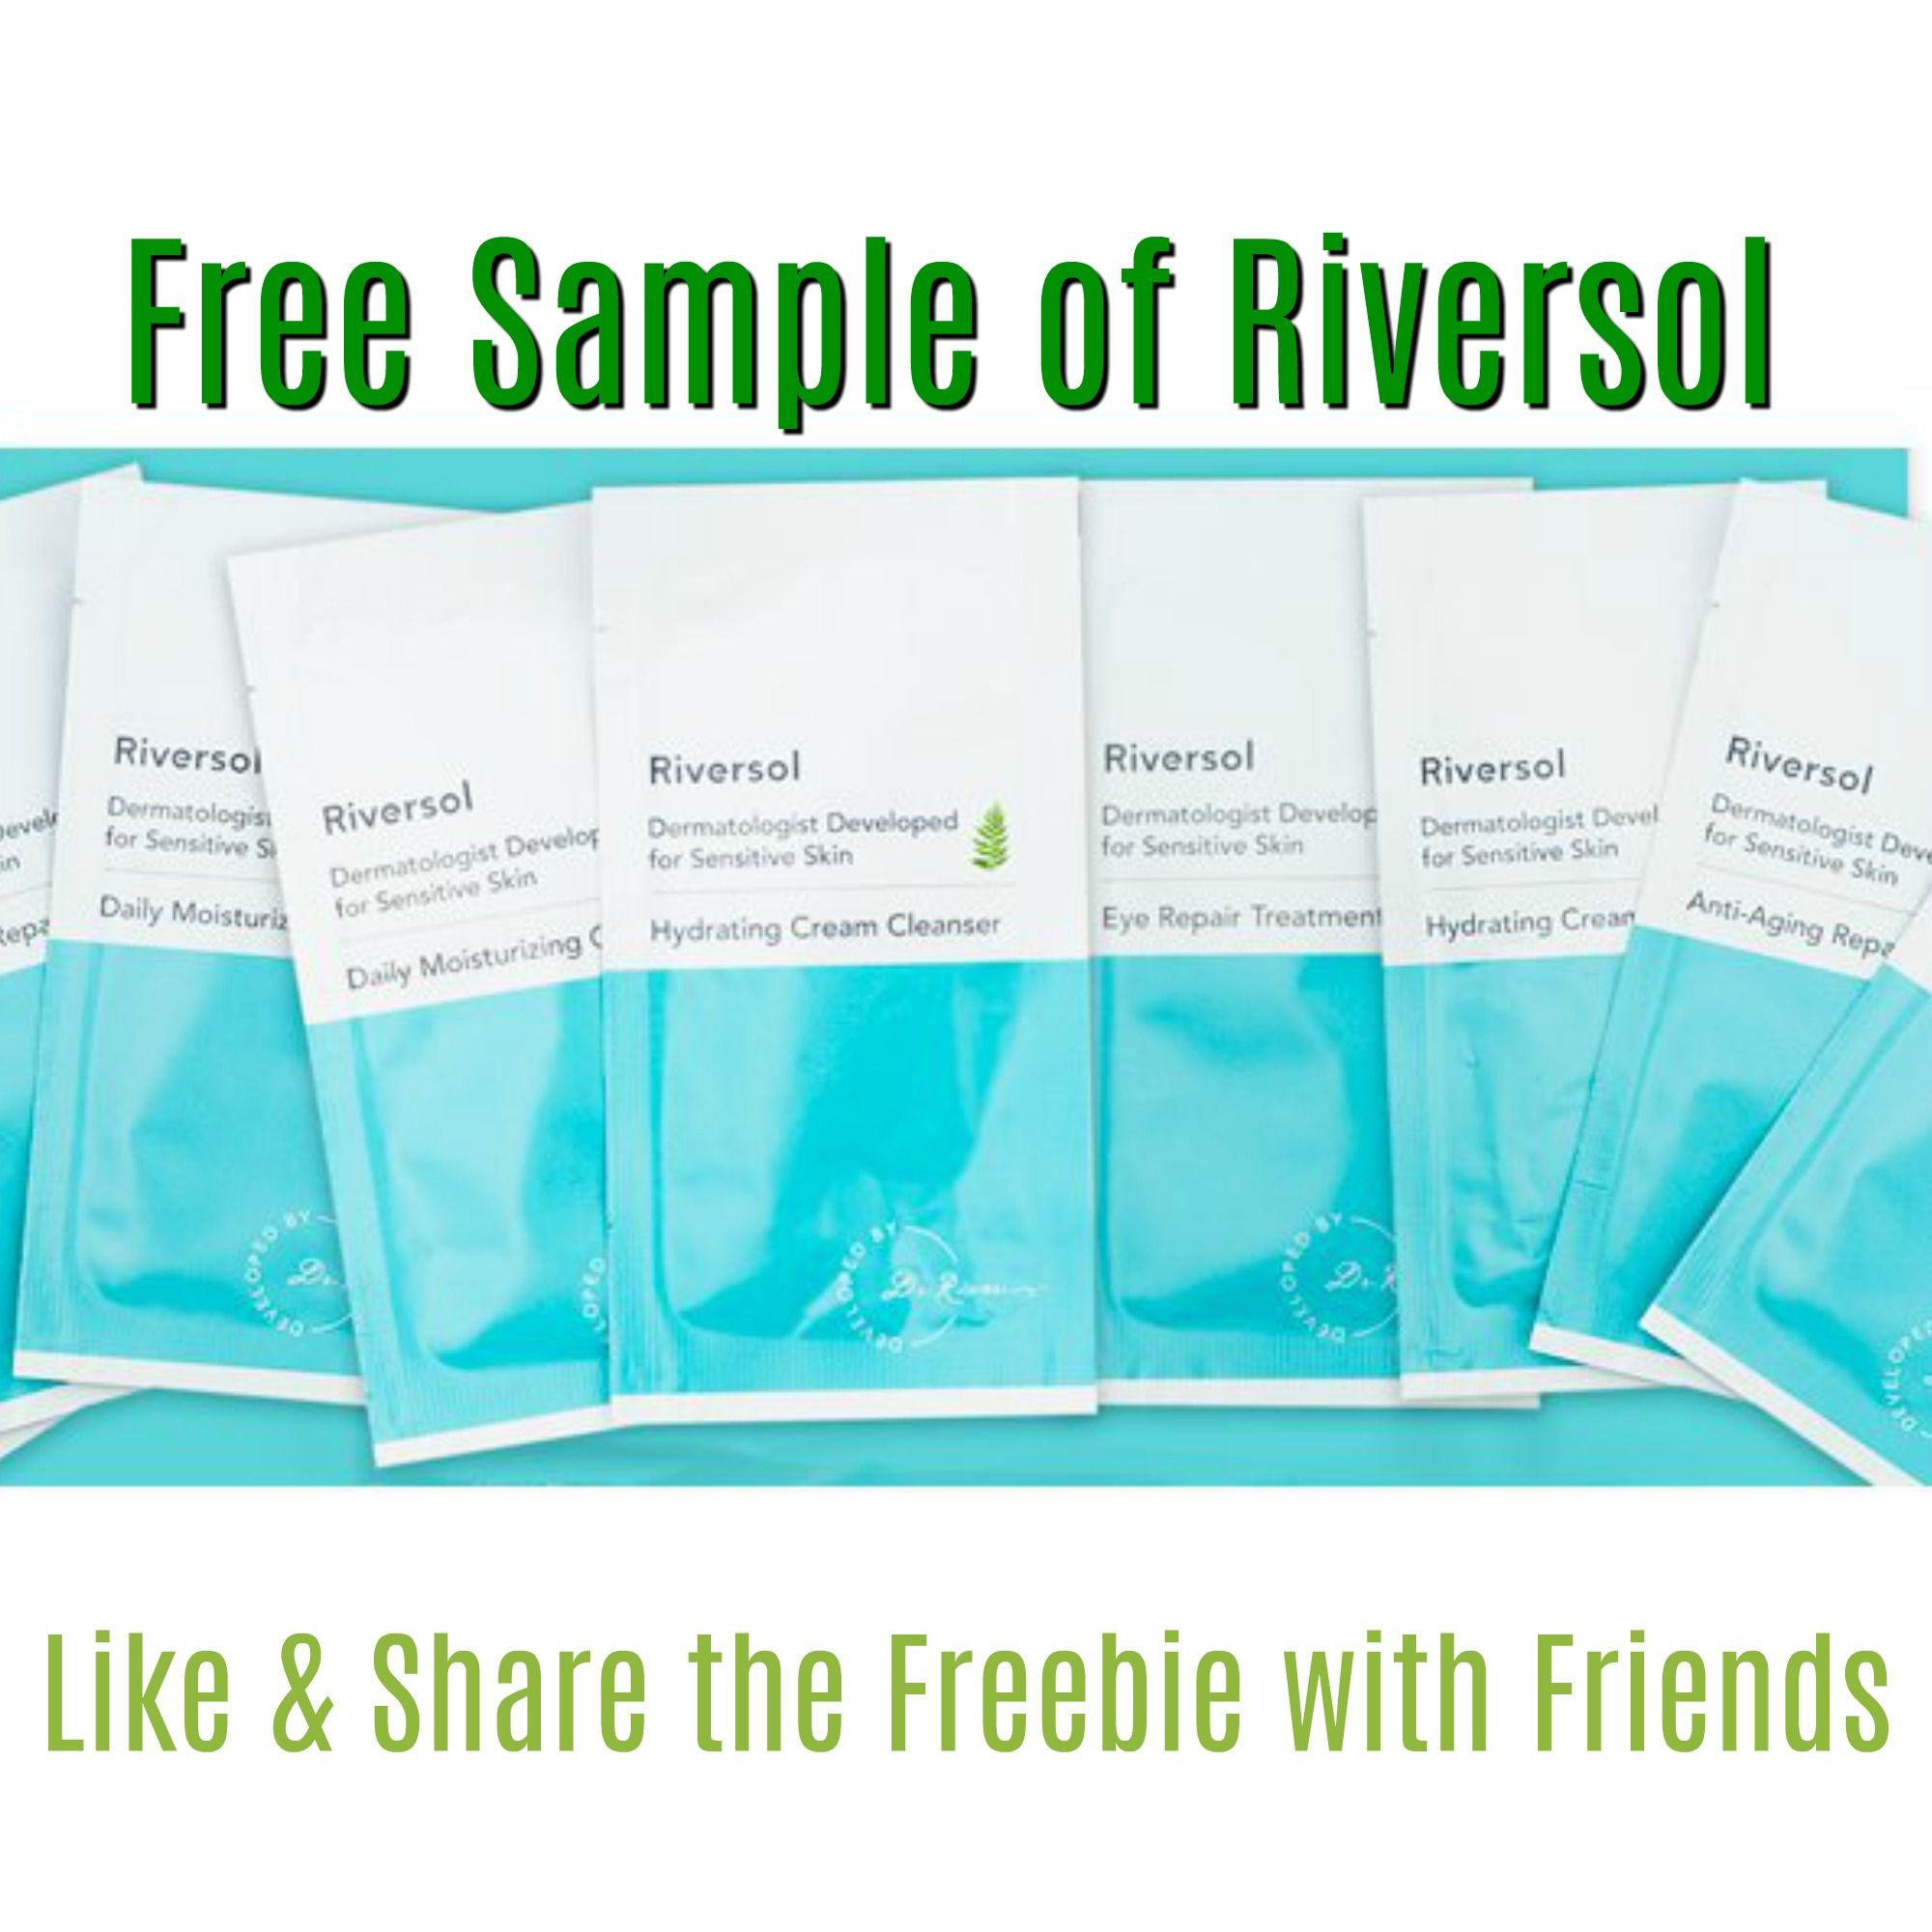 FREE Riversol Skin Care Sample Packs!! Go! Go! Go! Free